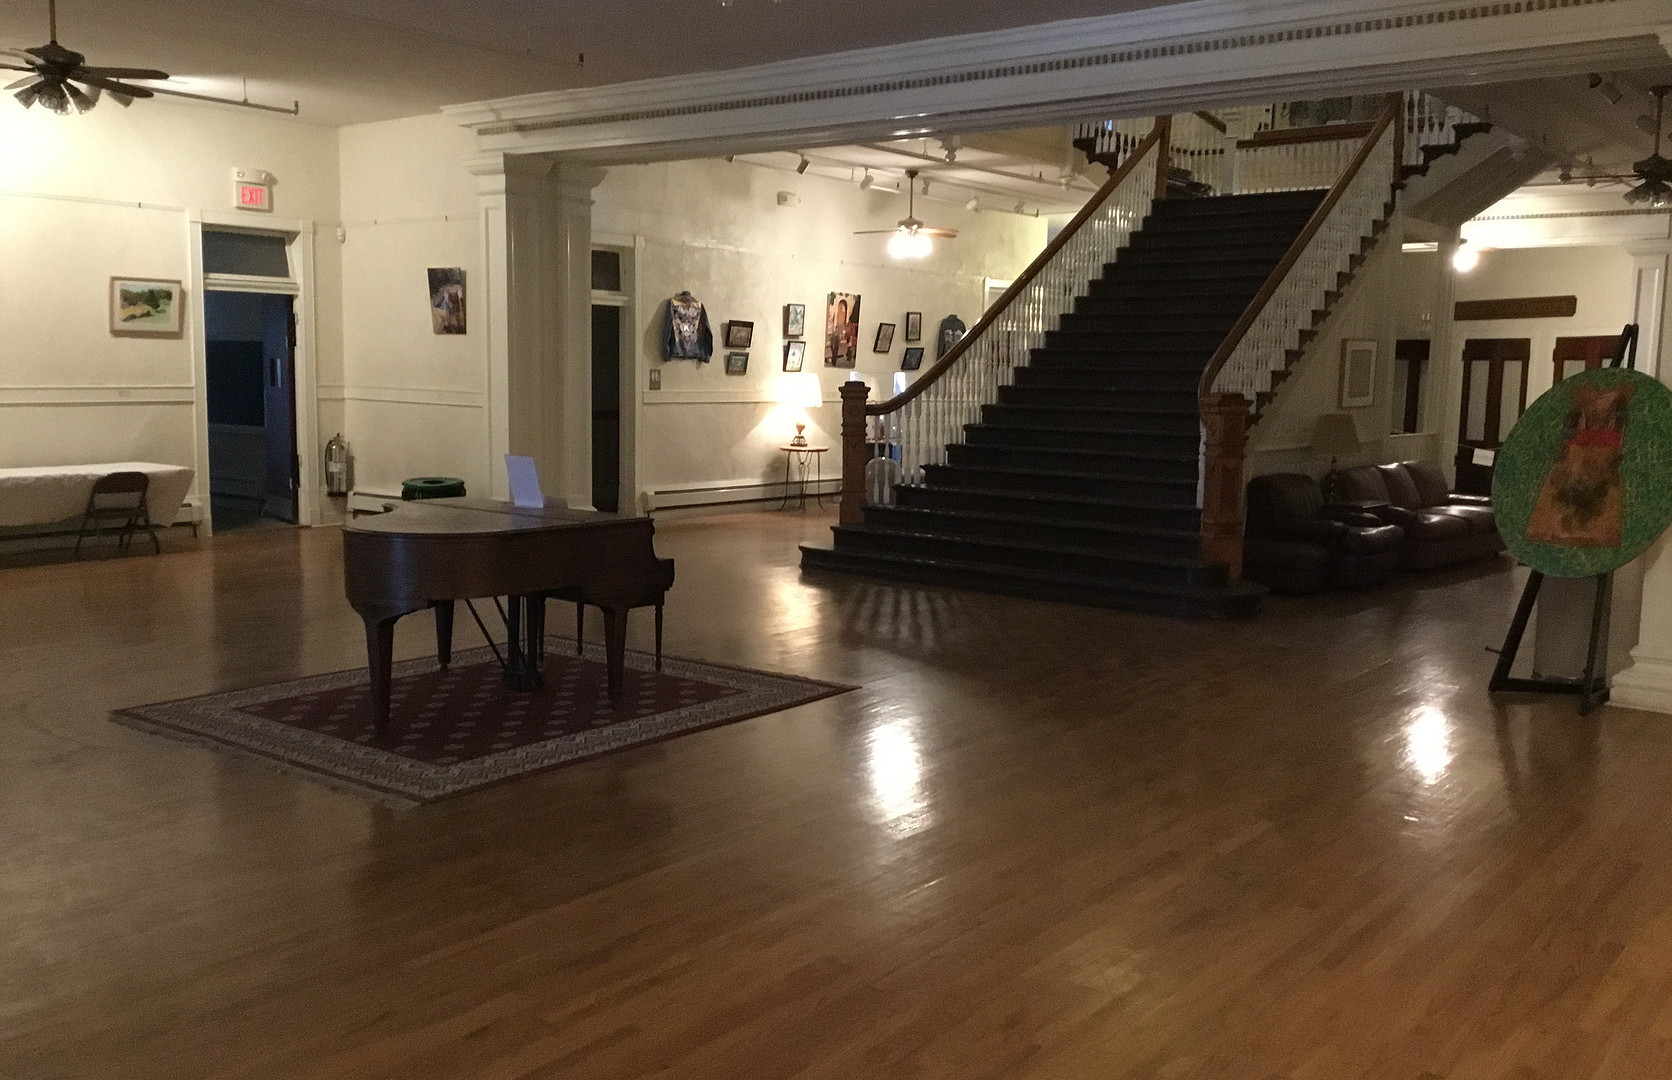 Main lobby view with staircase